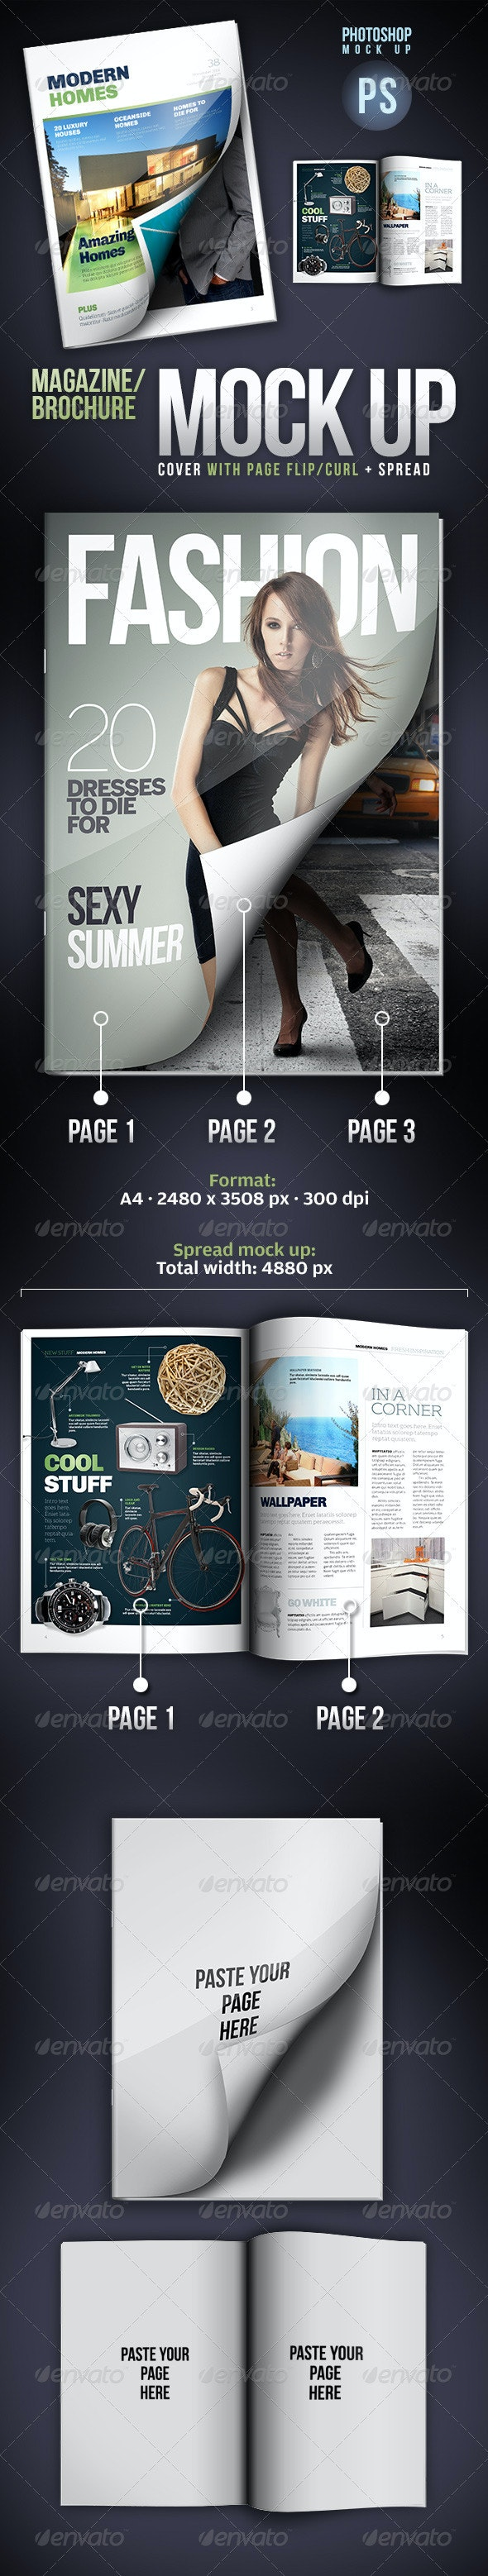 Cover Mock-up Page Flip/Curl + Spread Mock-up - Magazines Print